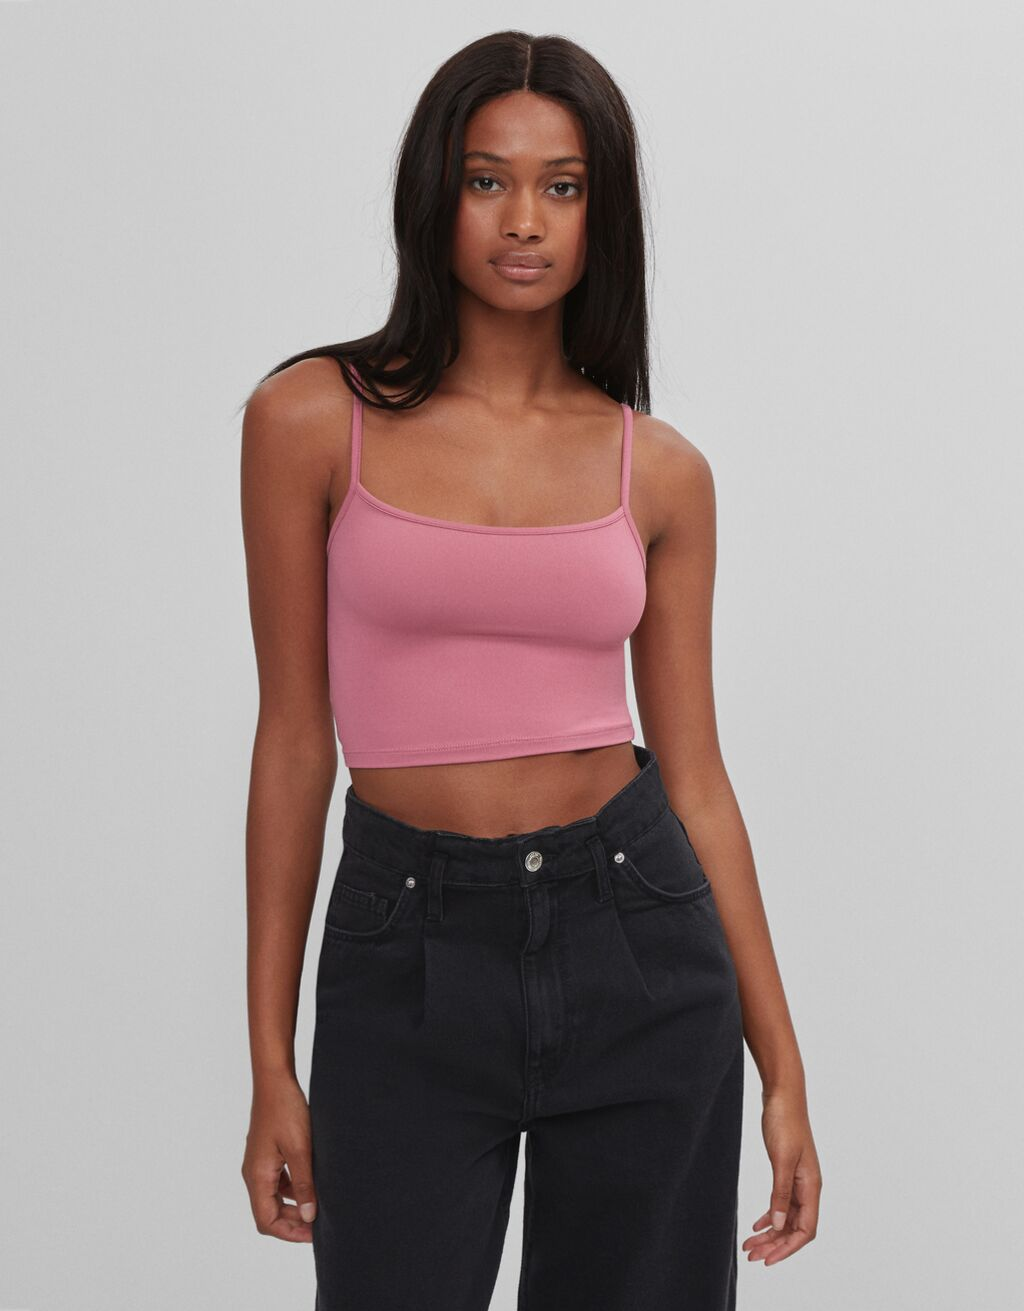 Cropped vest top